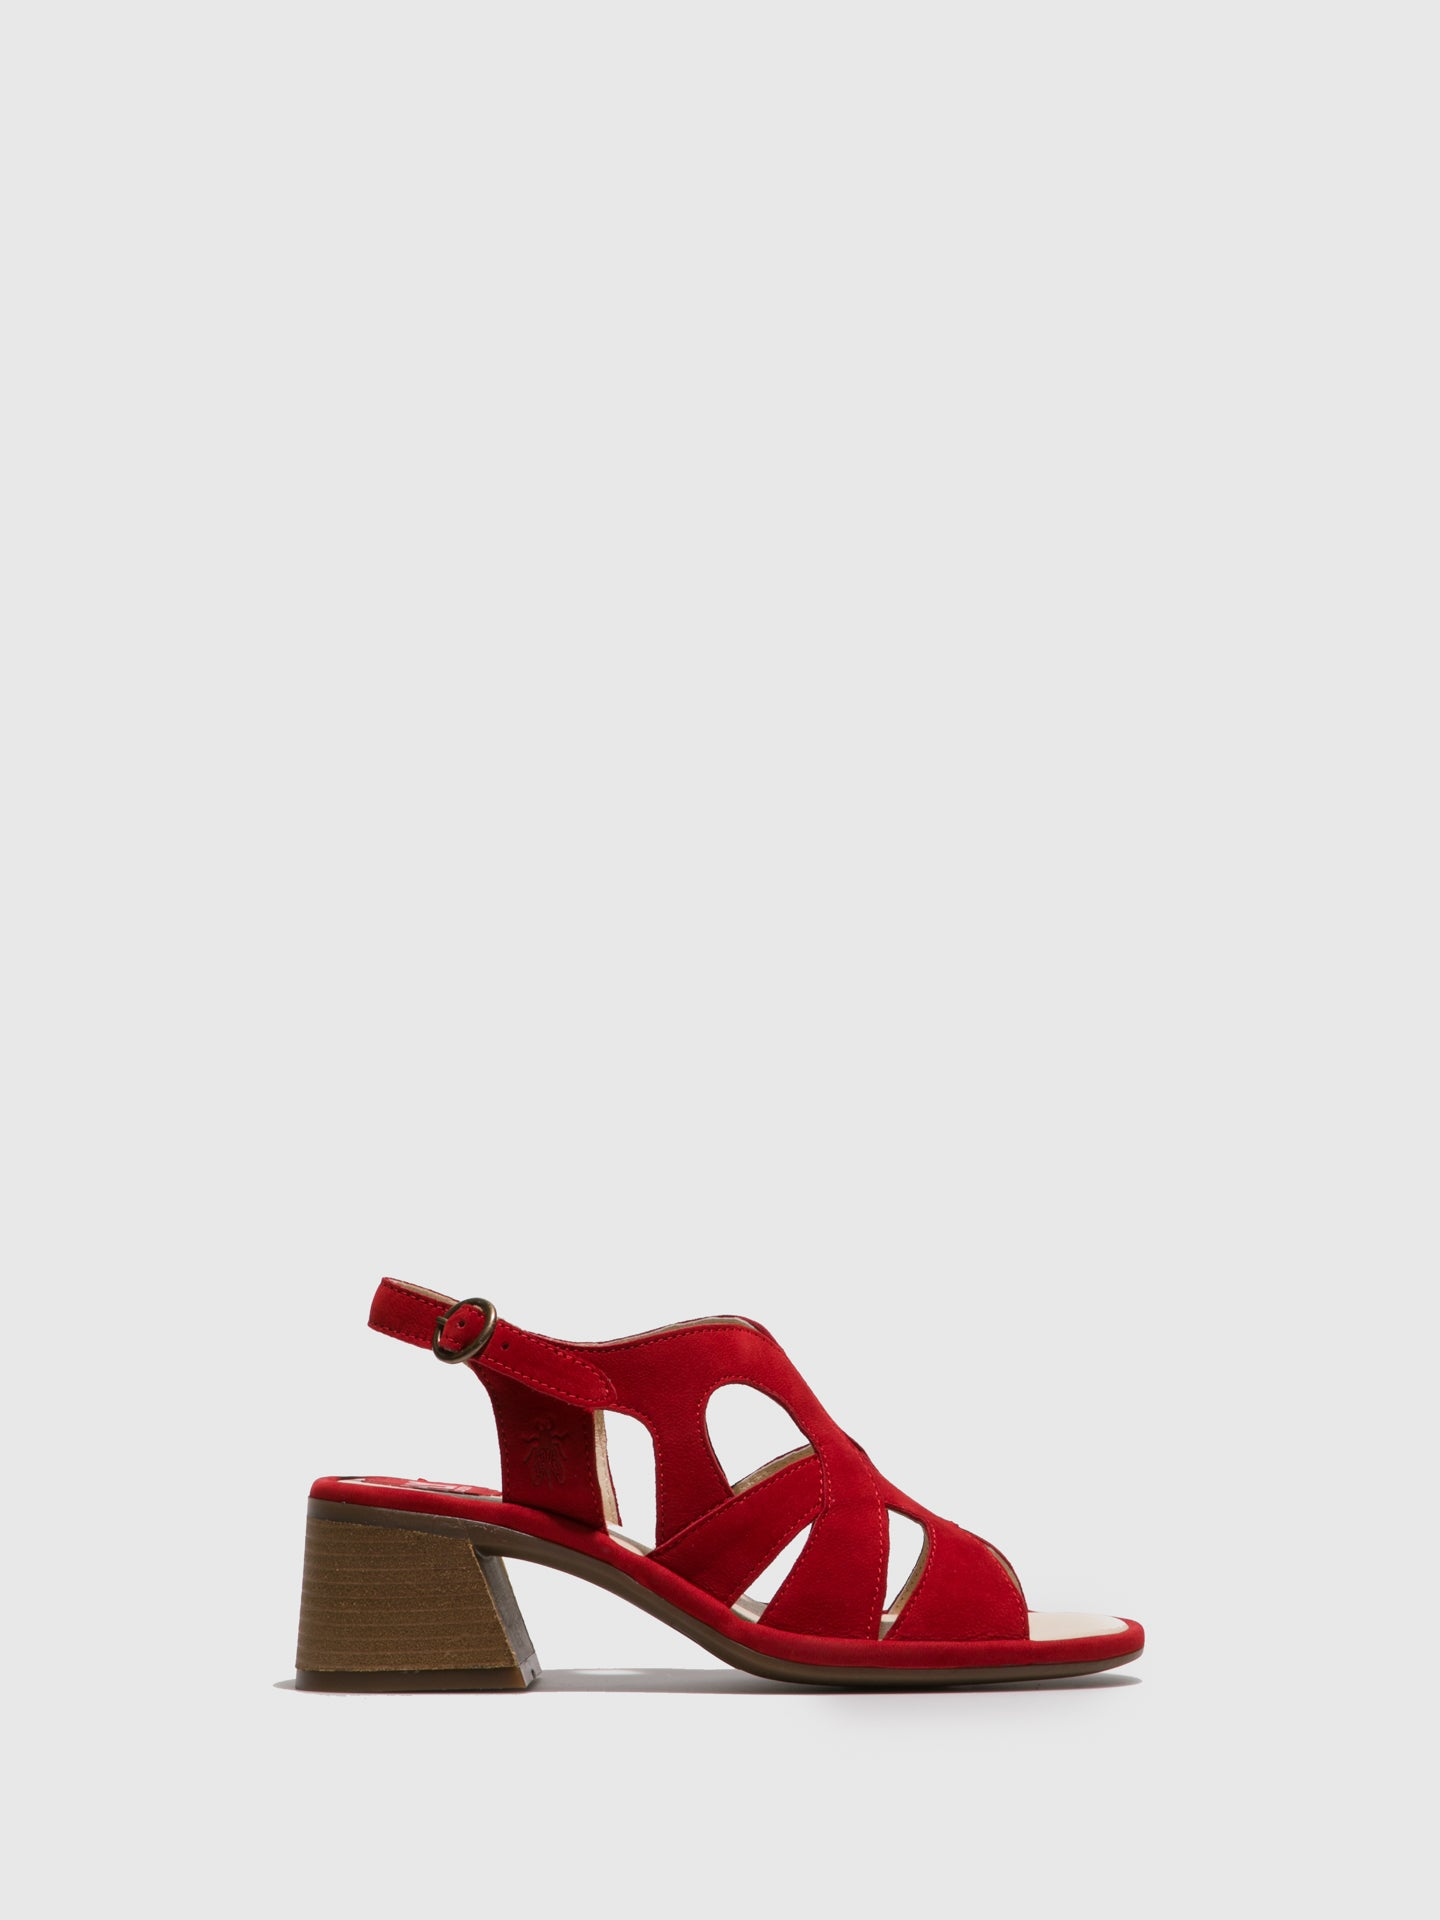 Fly London Firebrick Open Toe Sandals